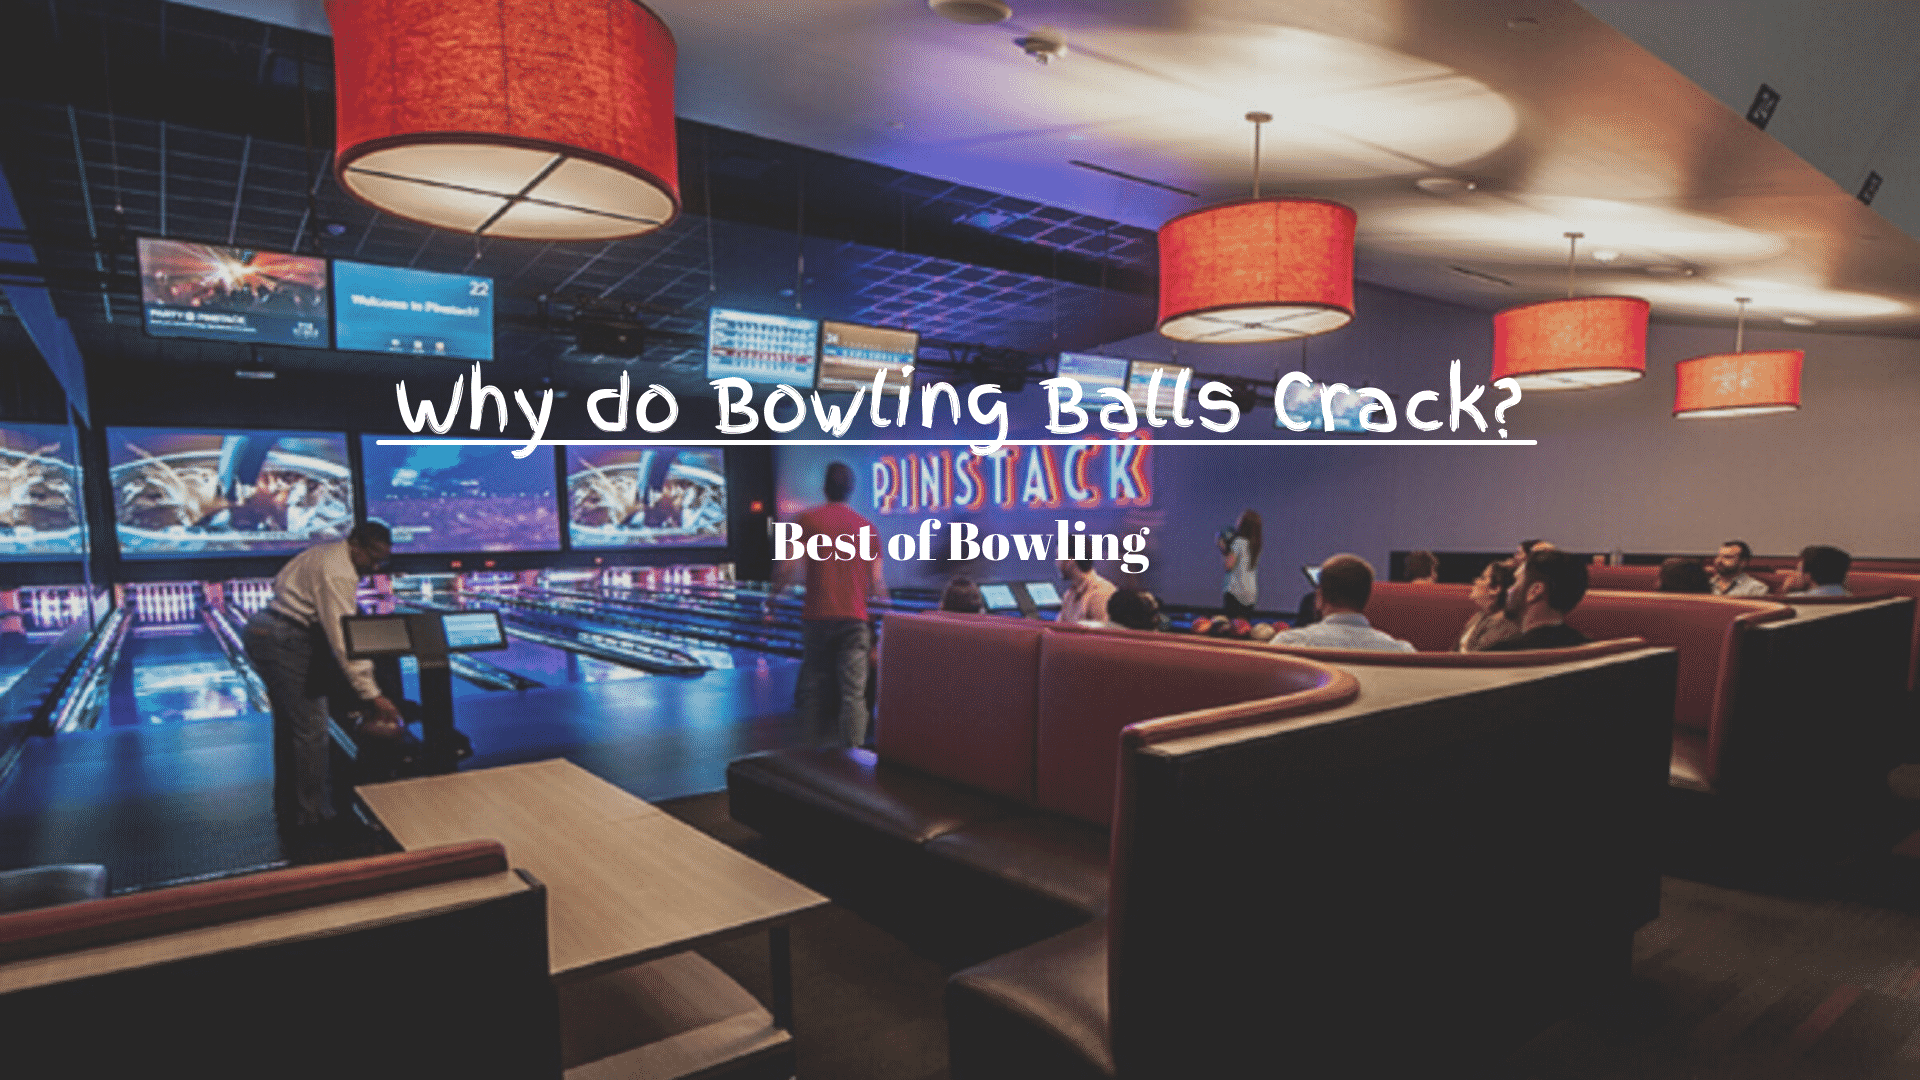 why do bowling balls crack?